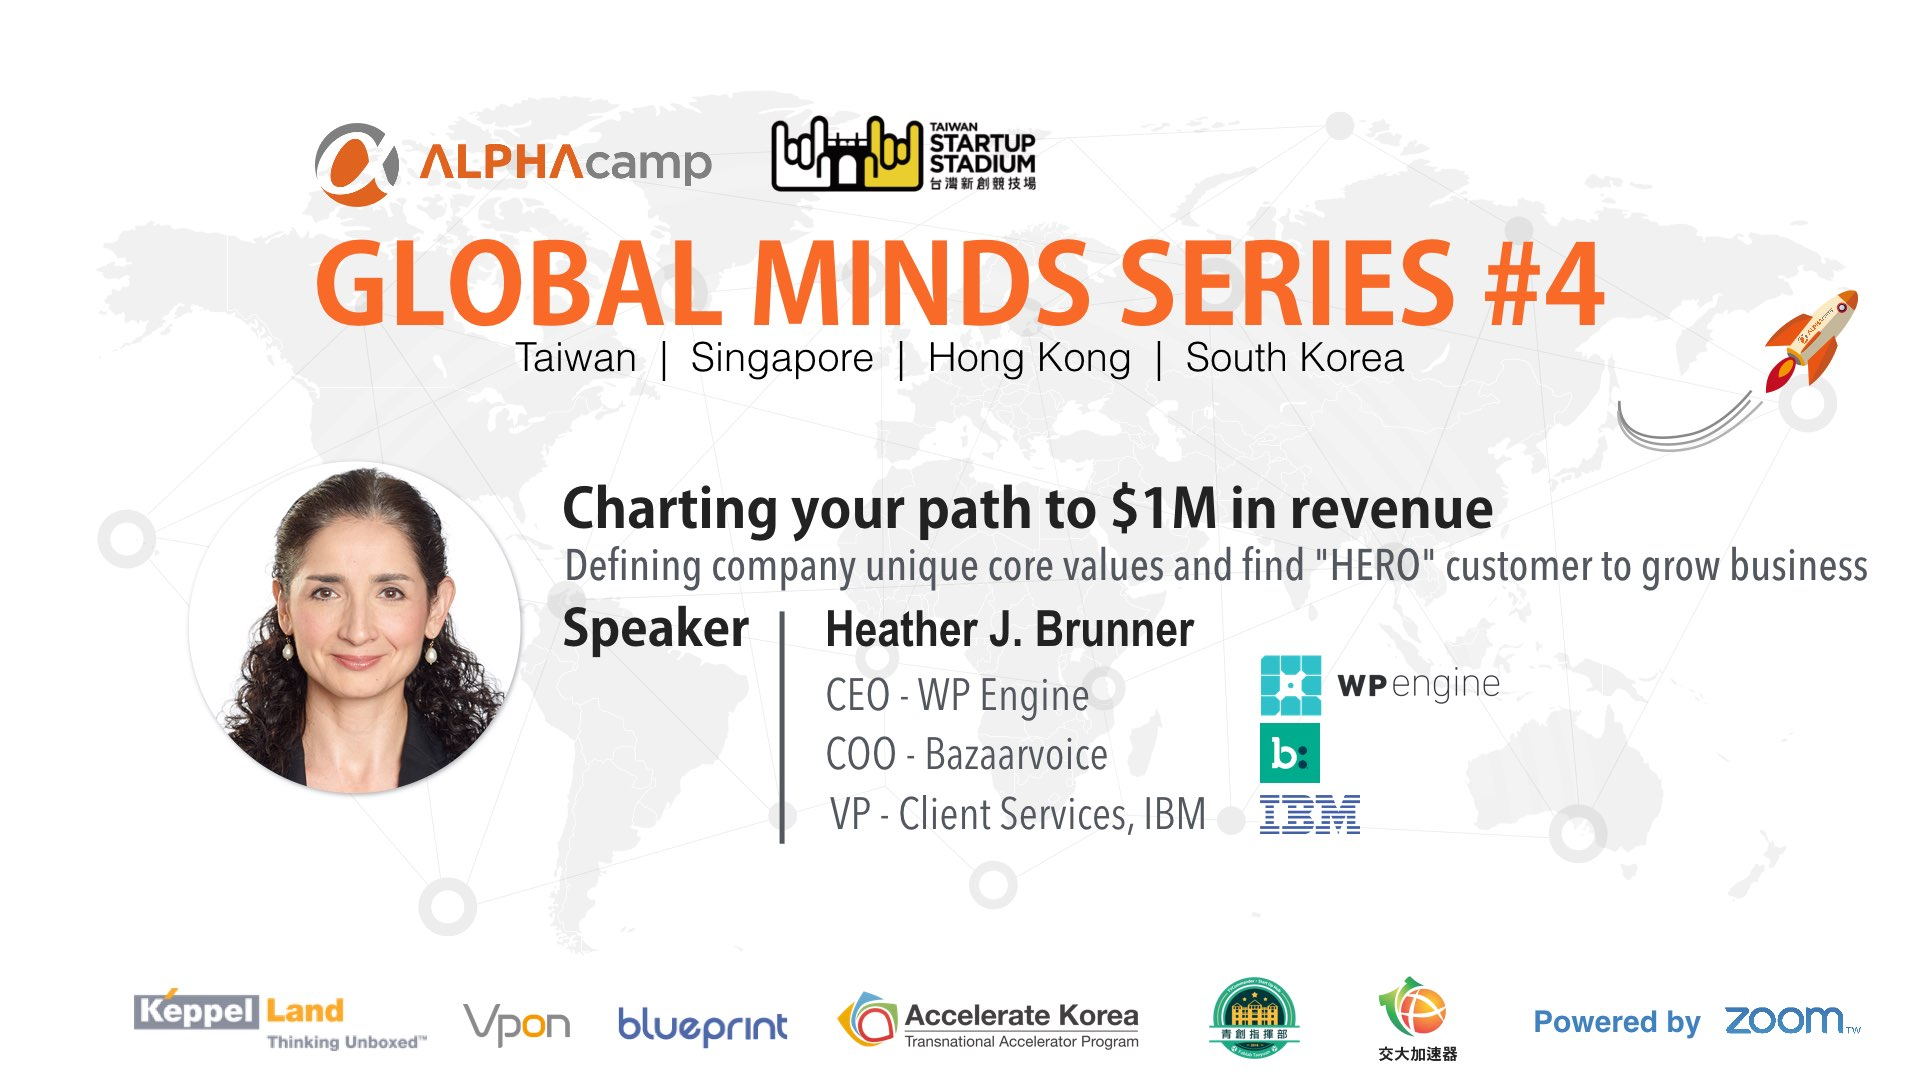 Global minds series 4 hk charting your path to 1m in revenue global minds series 4 hk charting your path to 1m in revenue malvernweather